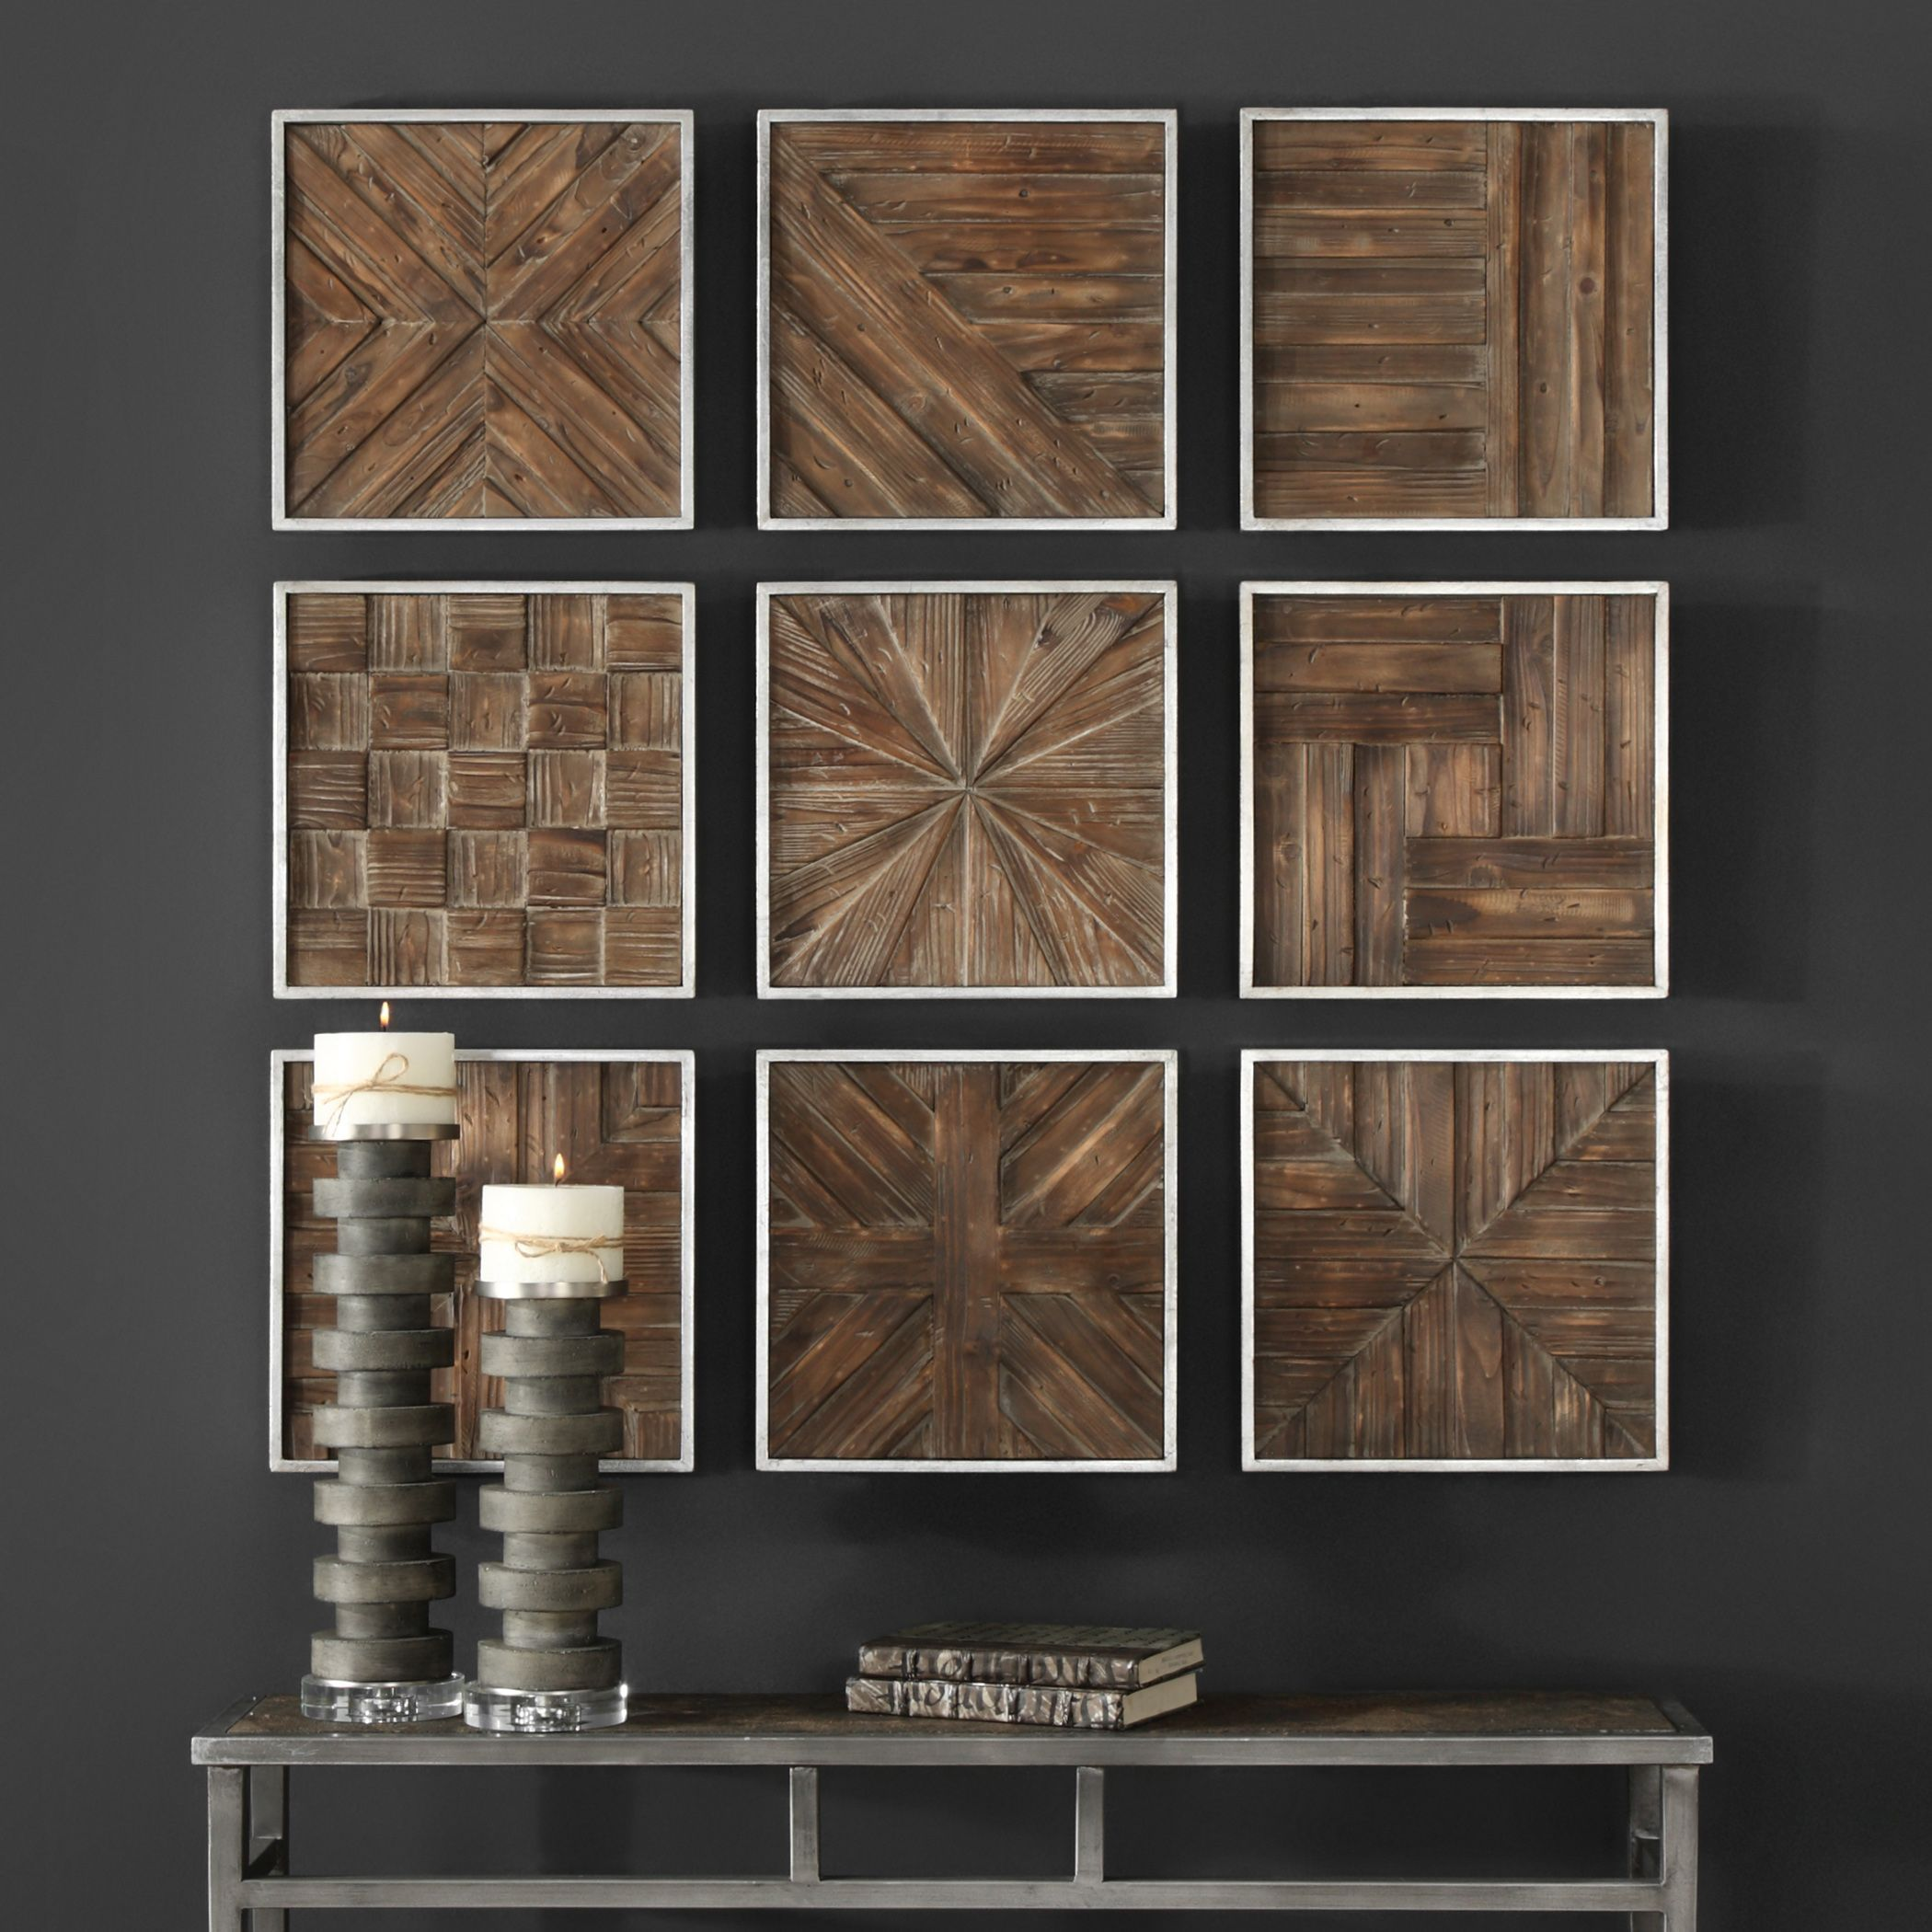 Bryndle Rustic Wooden Squares S 9 Wooden Wall Art Reclaimed Wood Paneling Wooden Wall Decor